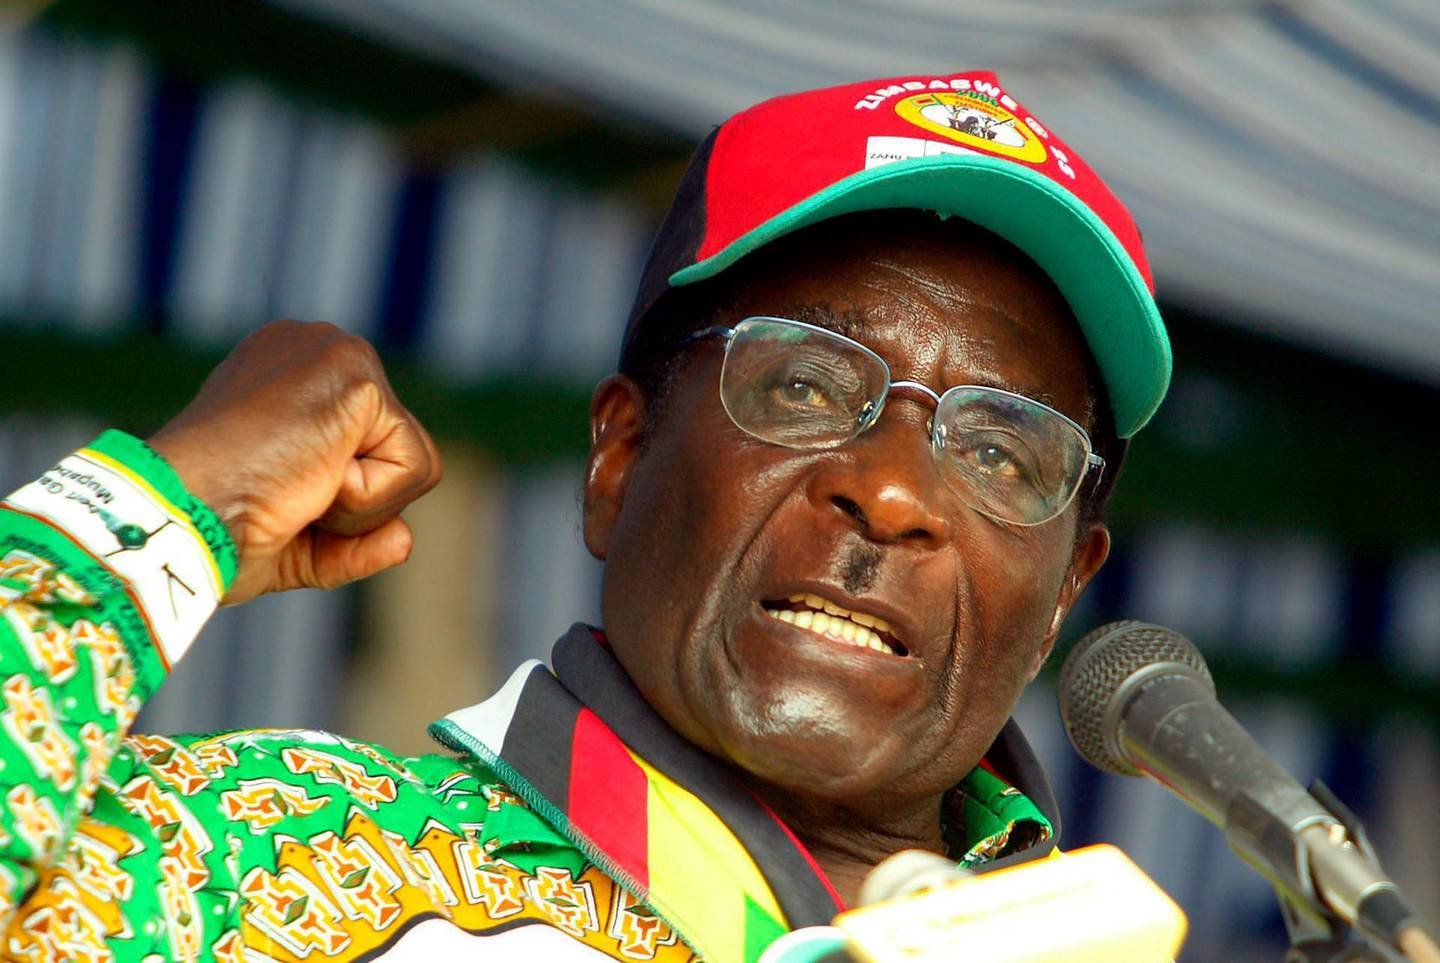 epa07821744 (FILE) - Zimbabwean President Robert Mugabe expresses himself during a ZANU-PF rally near the town of Mbaira south of Harare, Zimbabwe, Friday, 25 March 2005 (issued 06 September 2019). According to media reports, Robert Mugabe died on 06 September 2019 at the age of 95, in a Singapore hospital. Robert Mugabe became prime minister of Zimbabwe (formerly known as Rhodesia) in 1980 and served as the country's president from 1987 until his forced resignation in 2017, after 37 years of autocratic rule. In 1963, he co-founded ZANU, a resistance movement against British colonial rule.  EPA/STR